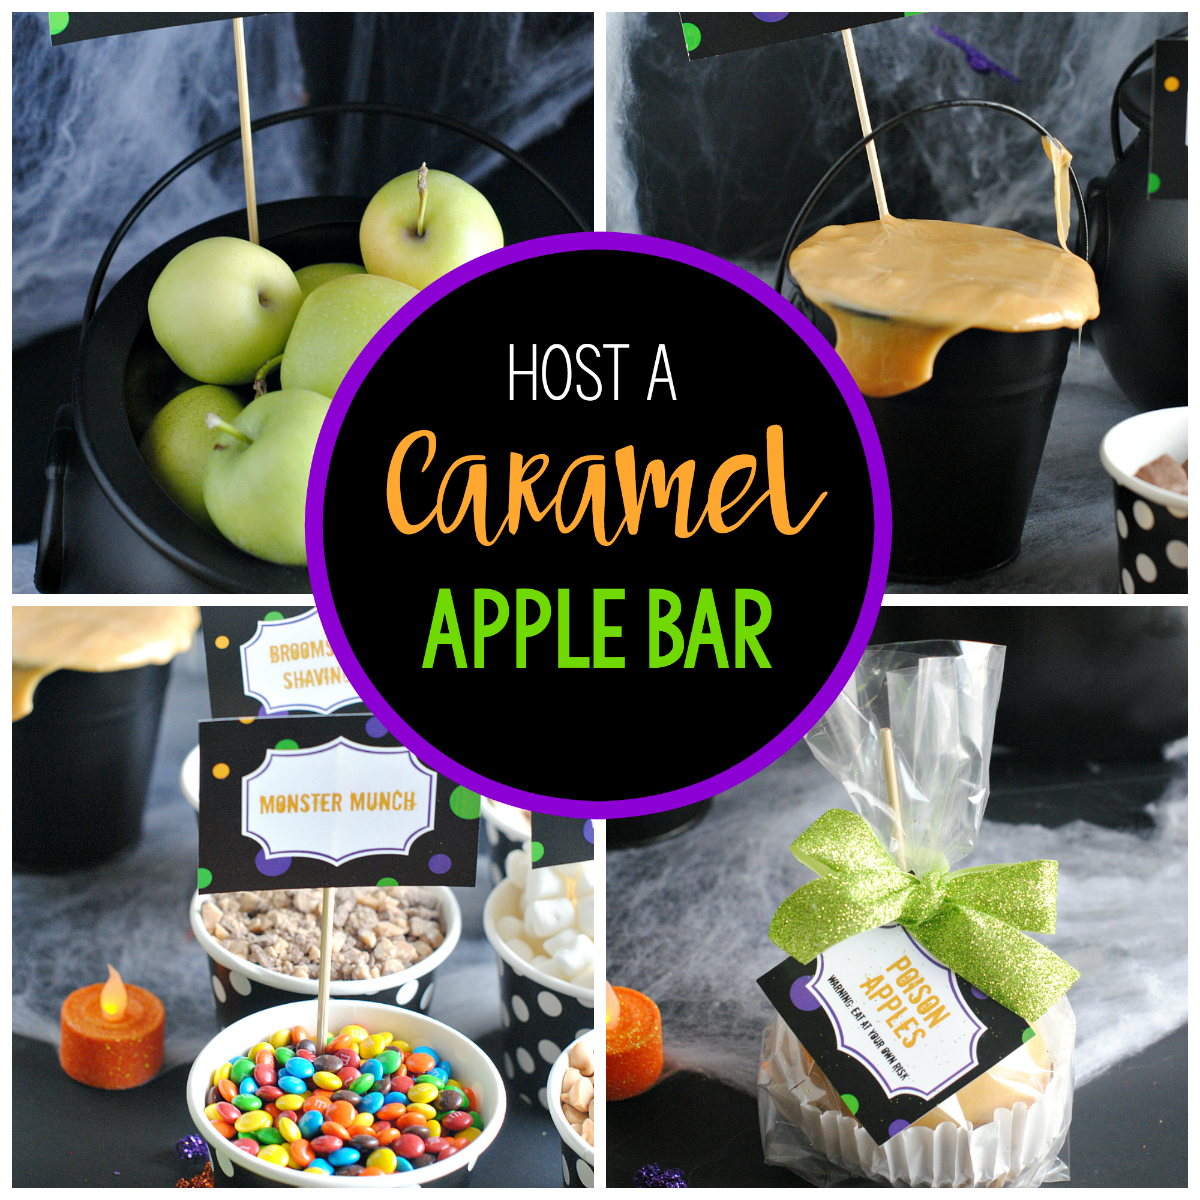 How to Host a Caramel Apple Bar